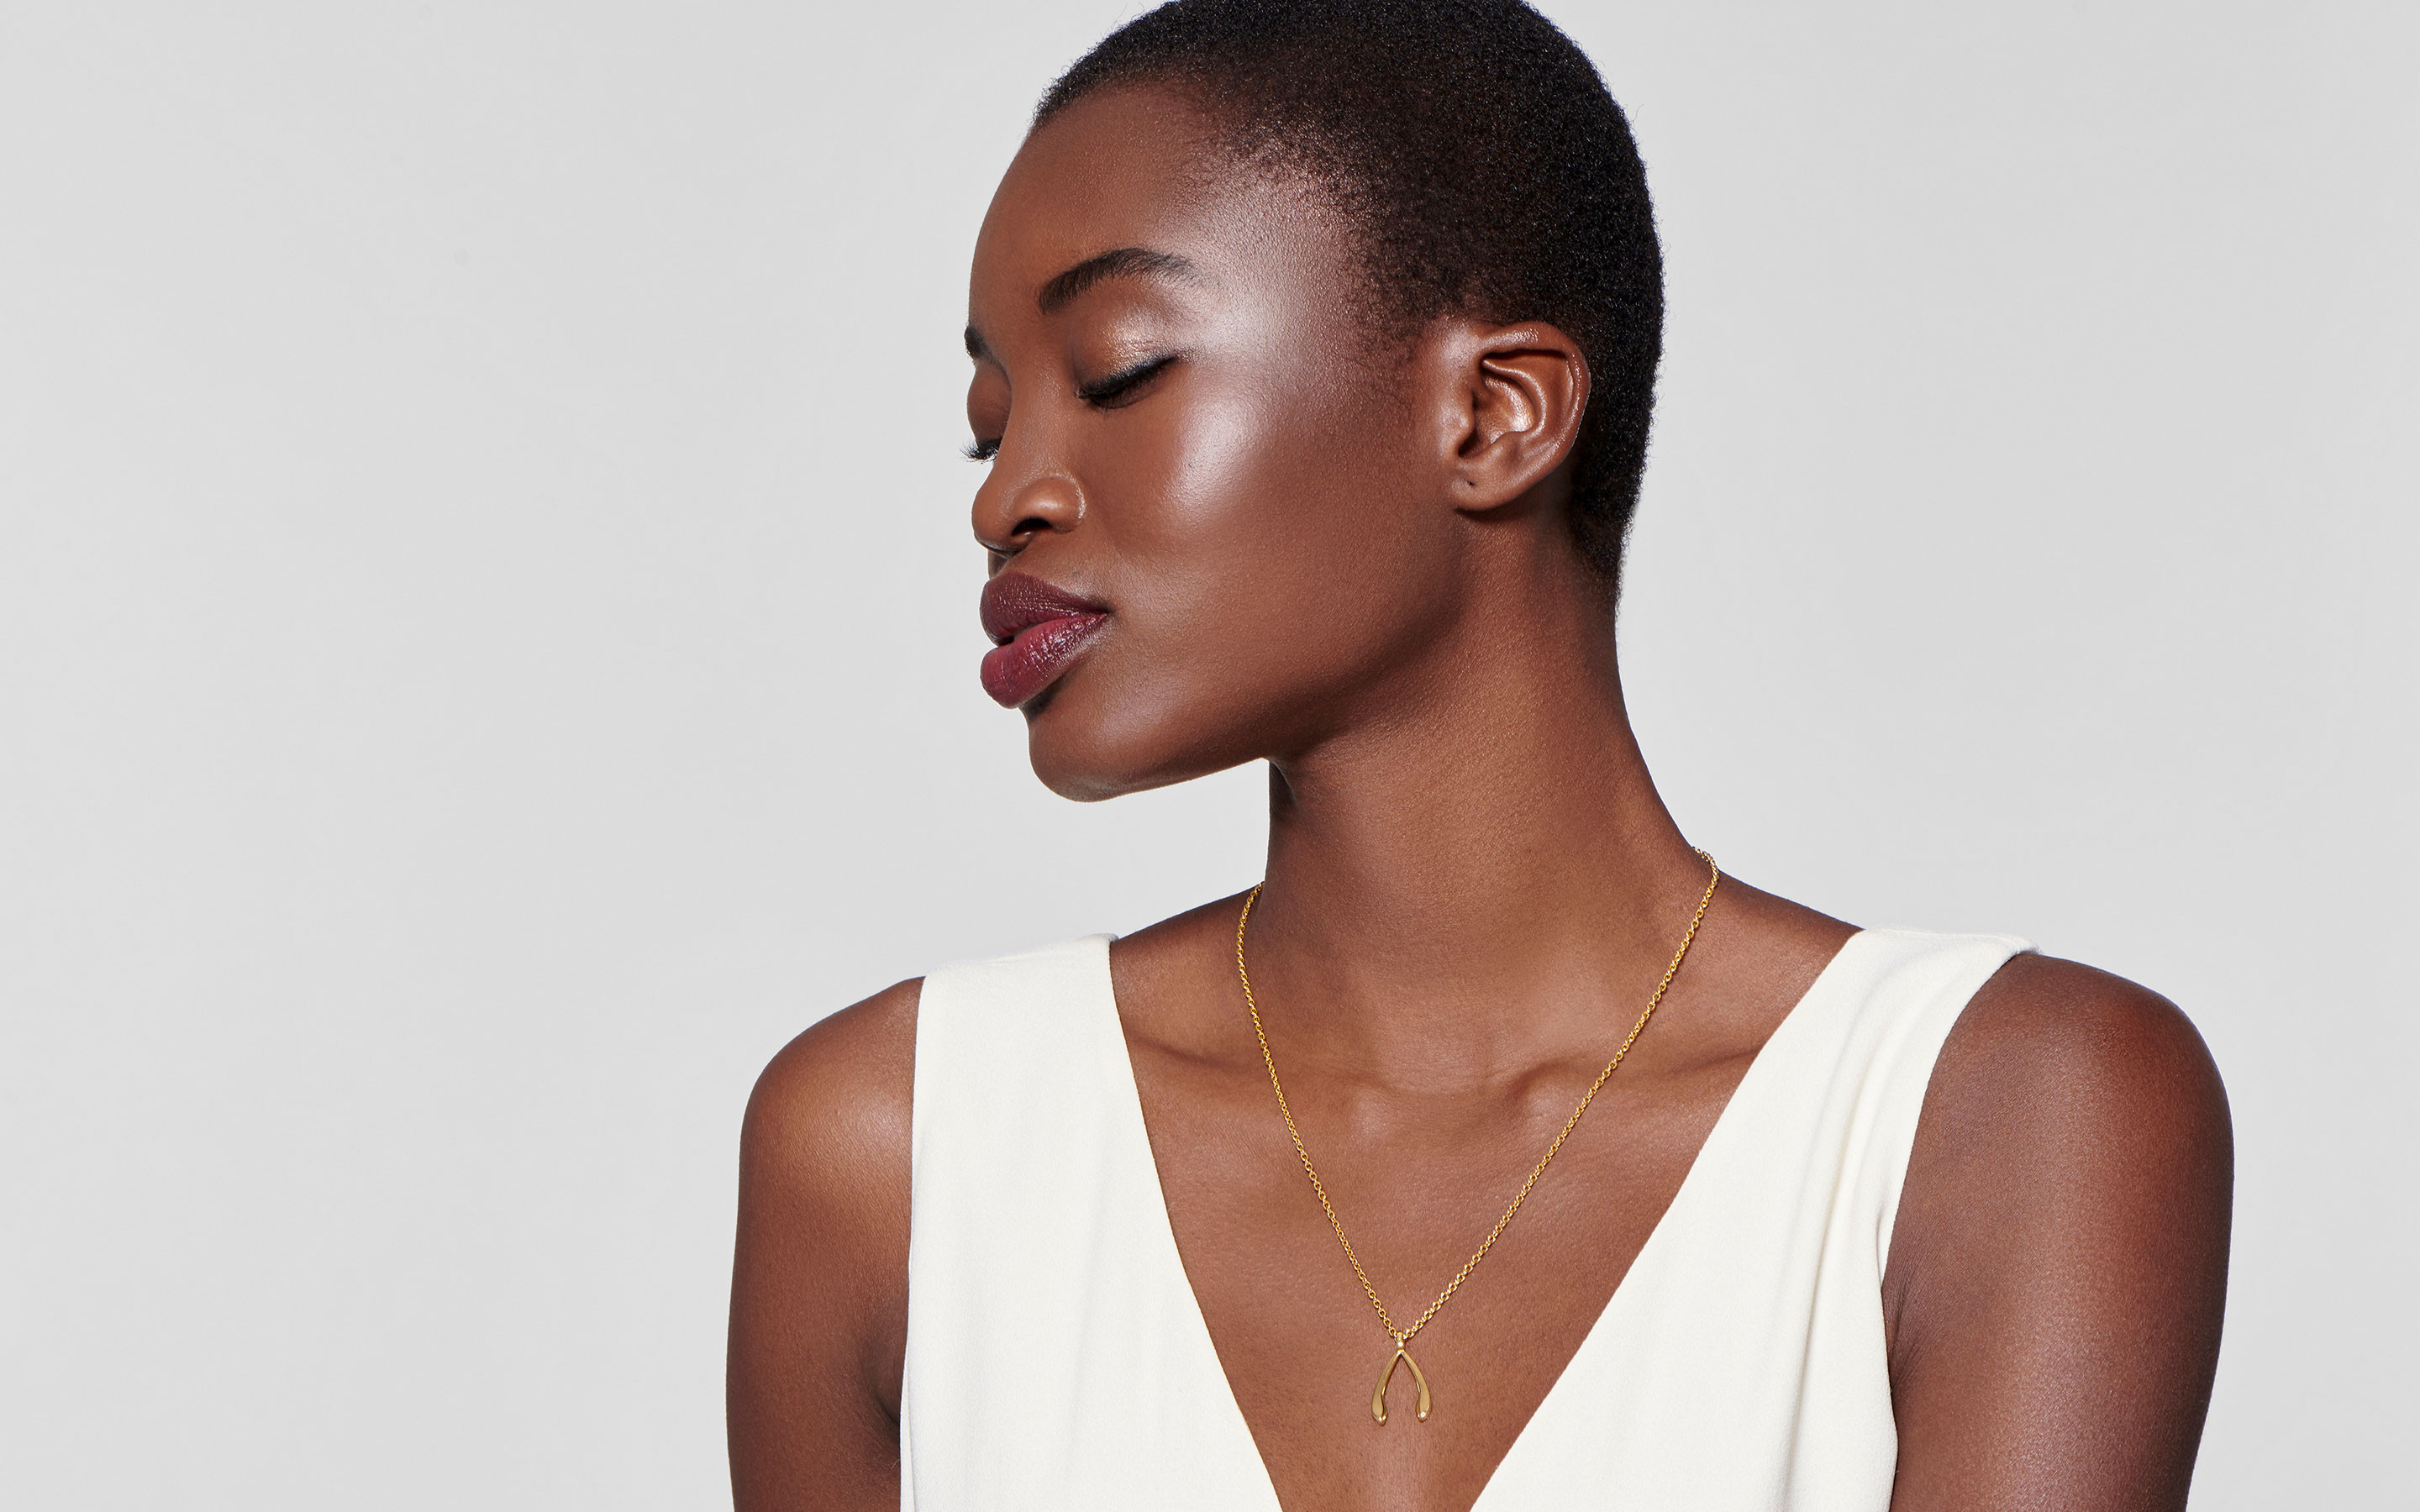 glamorous black model in profile showcasing 22 karat gold necklace wishbone charm